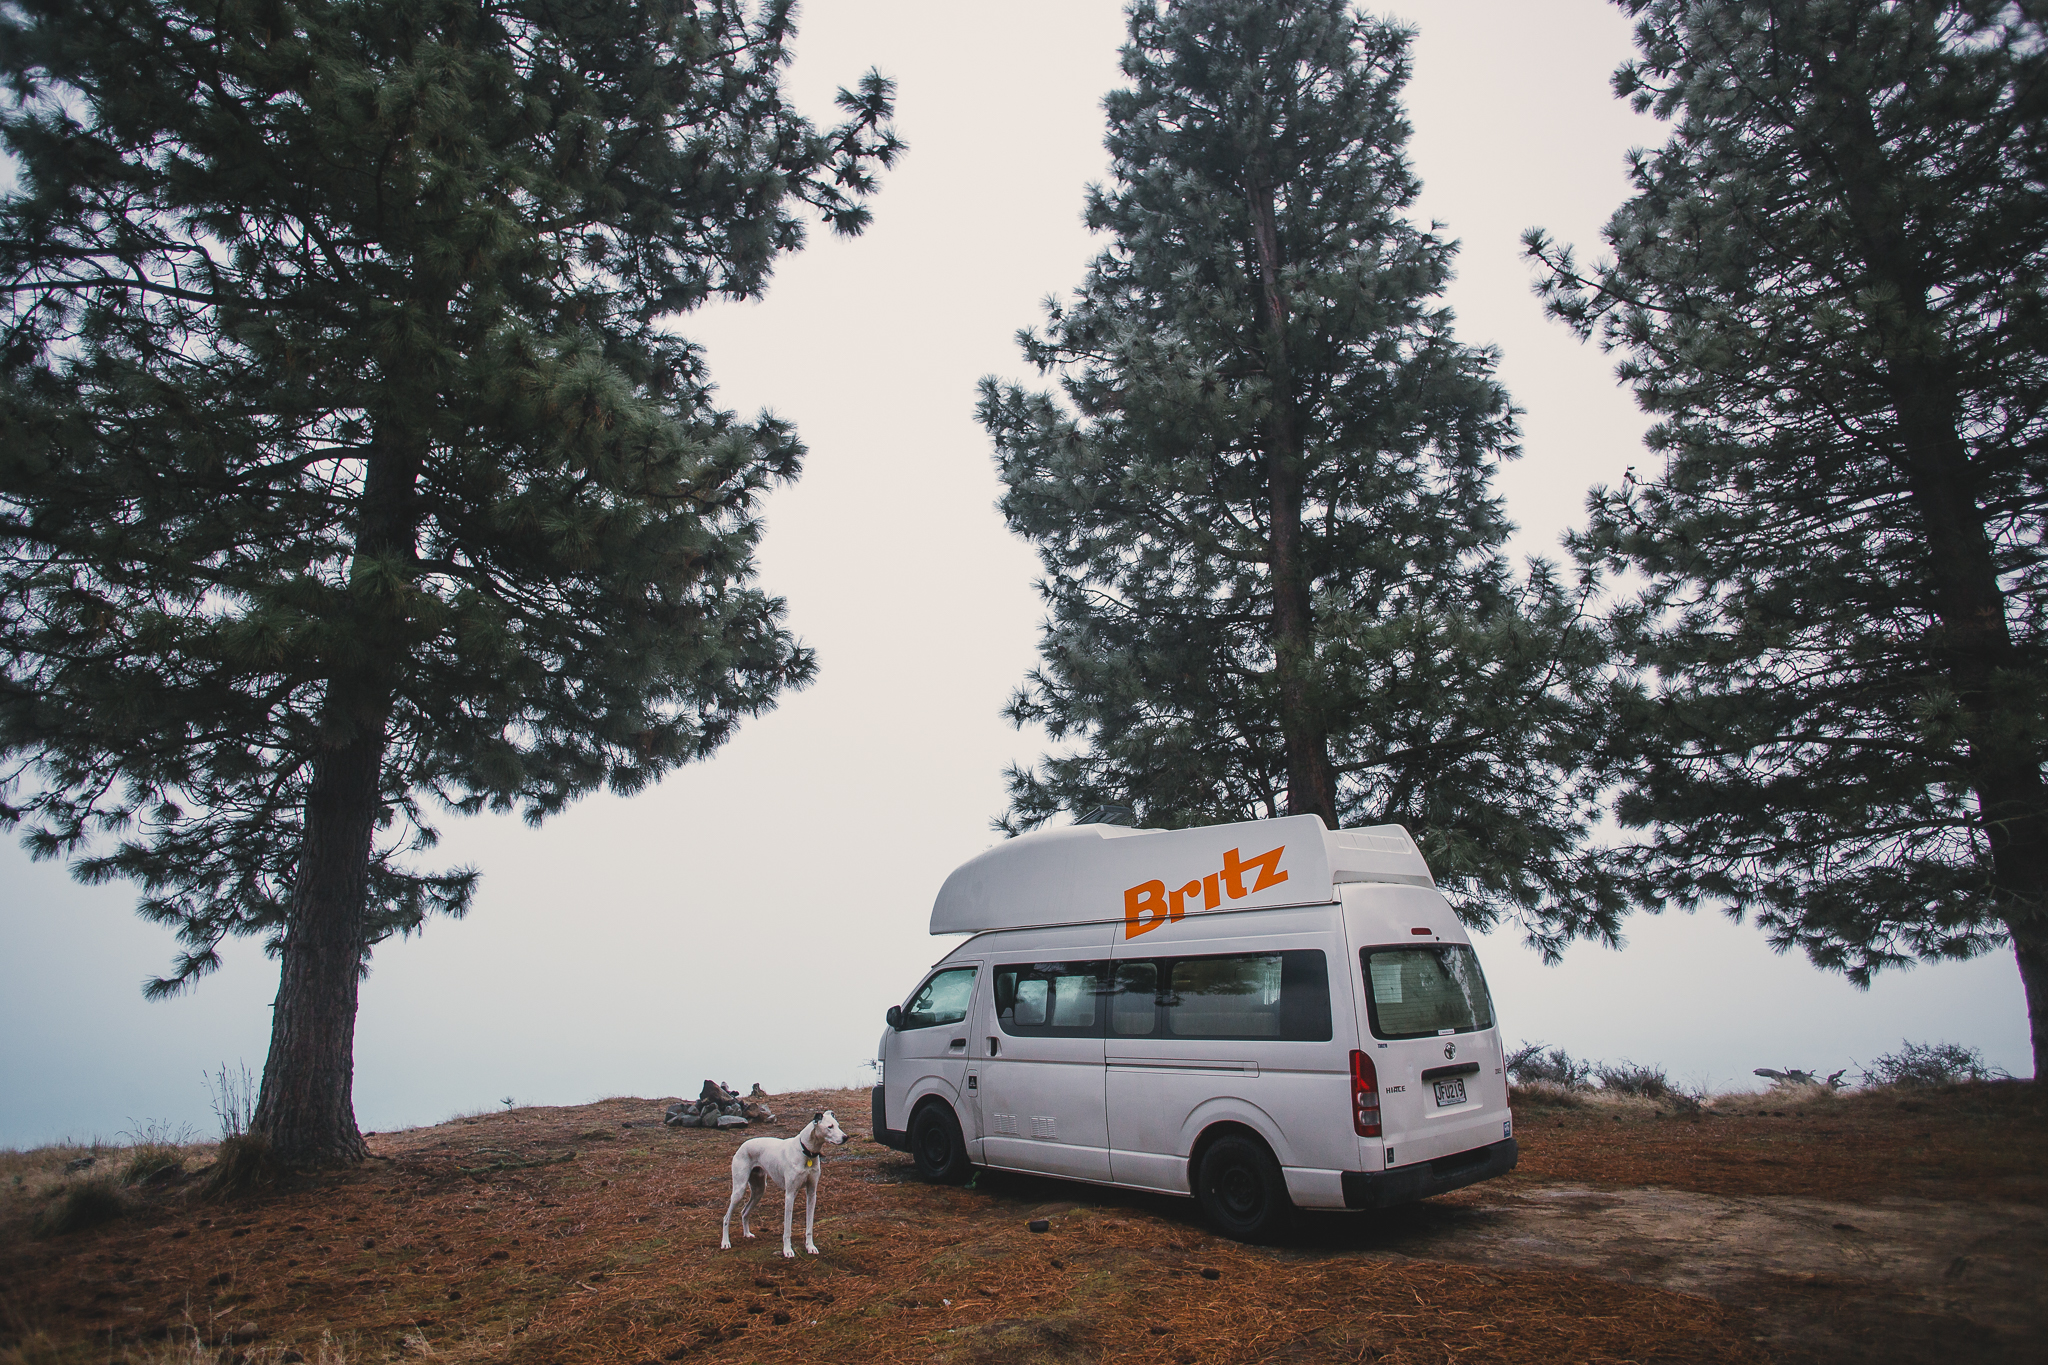 A dog stands outside a campervan on a road trip